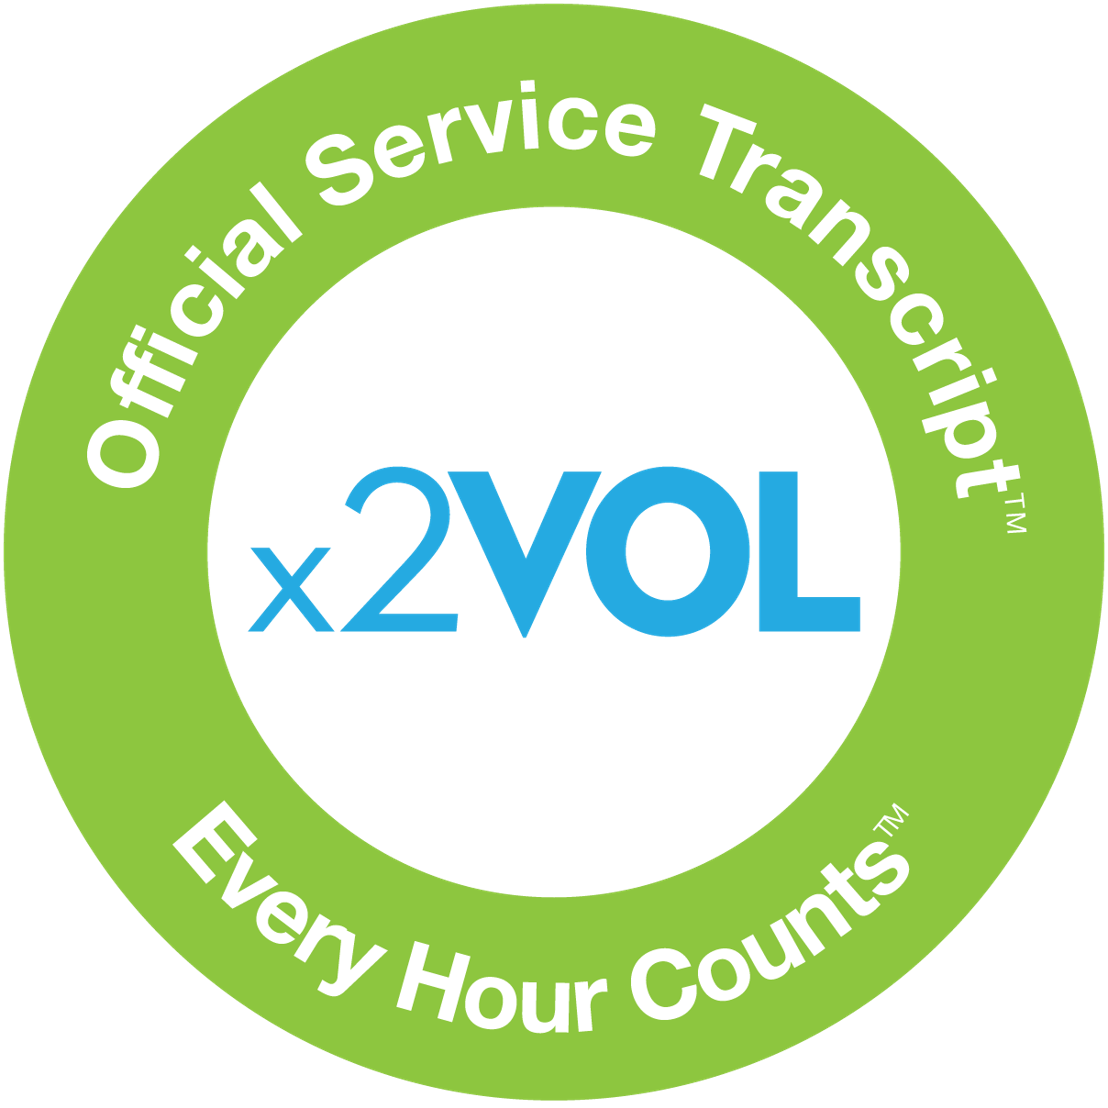 300 dpi version of Official Service Transcript